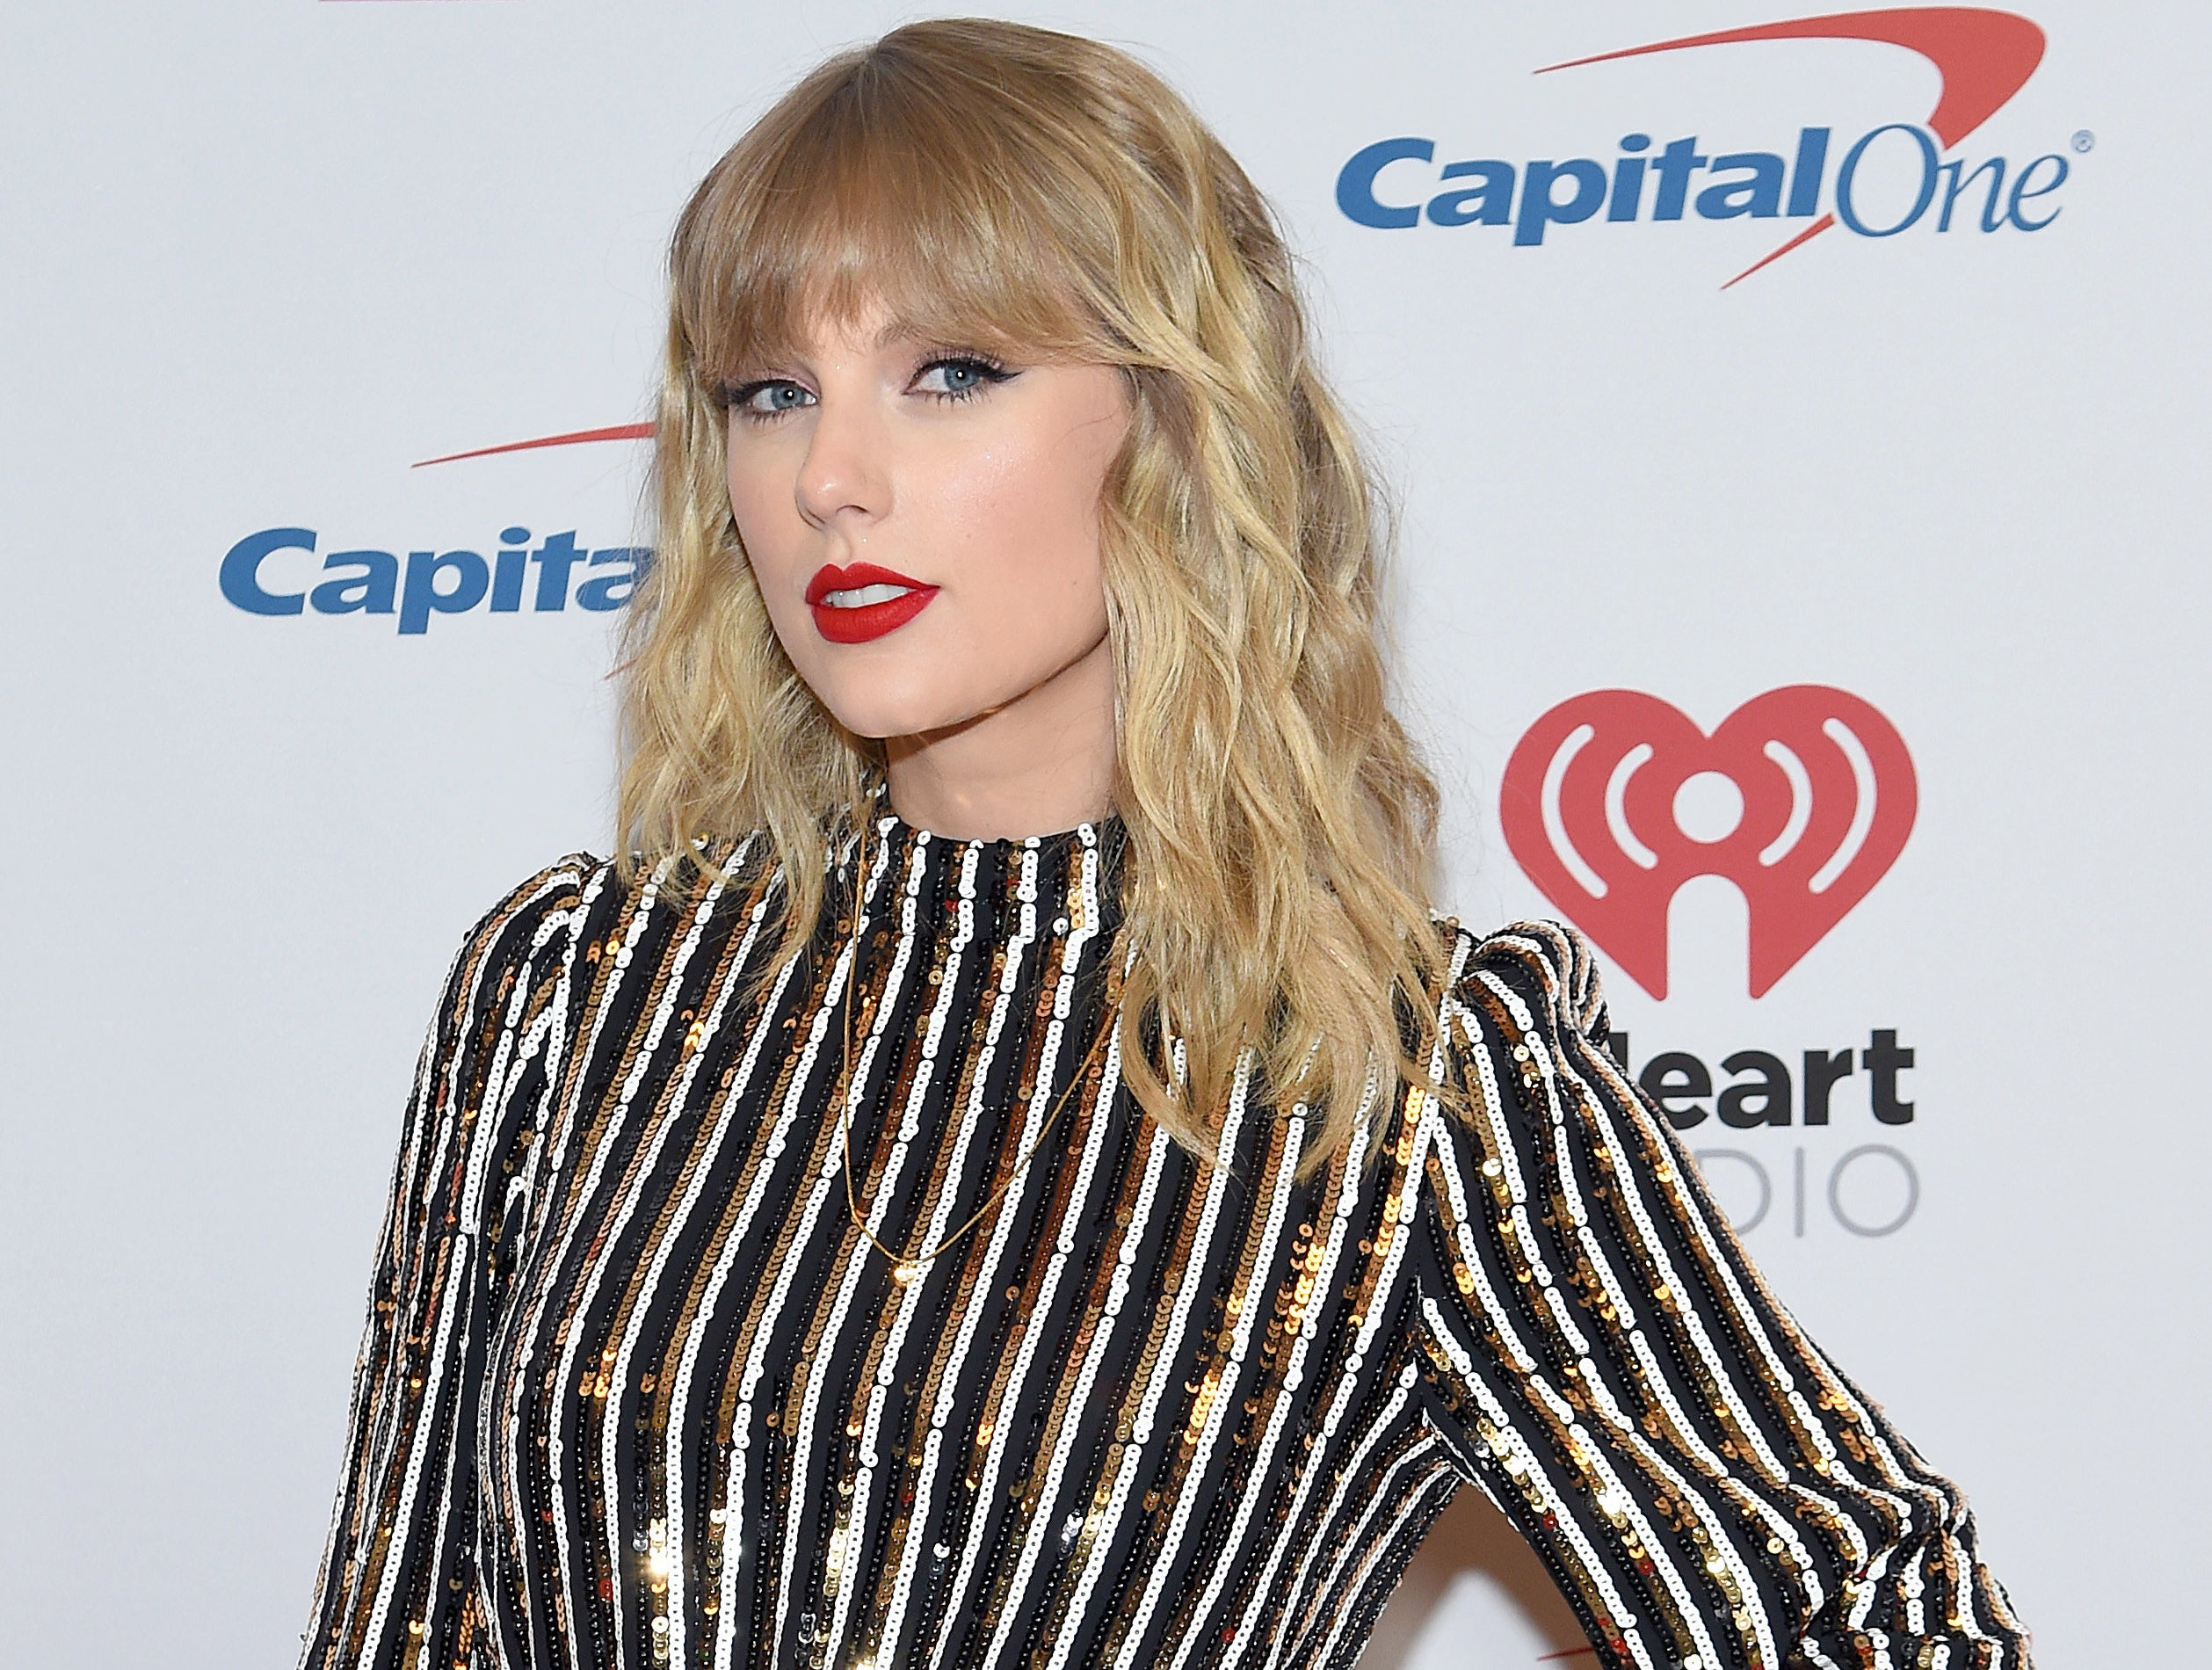 Taylor wears a sequined black and white stripe dress